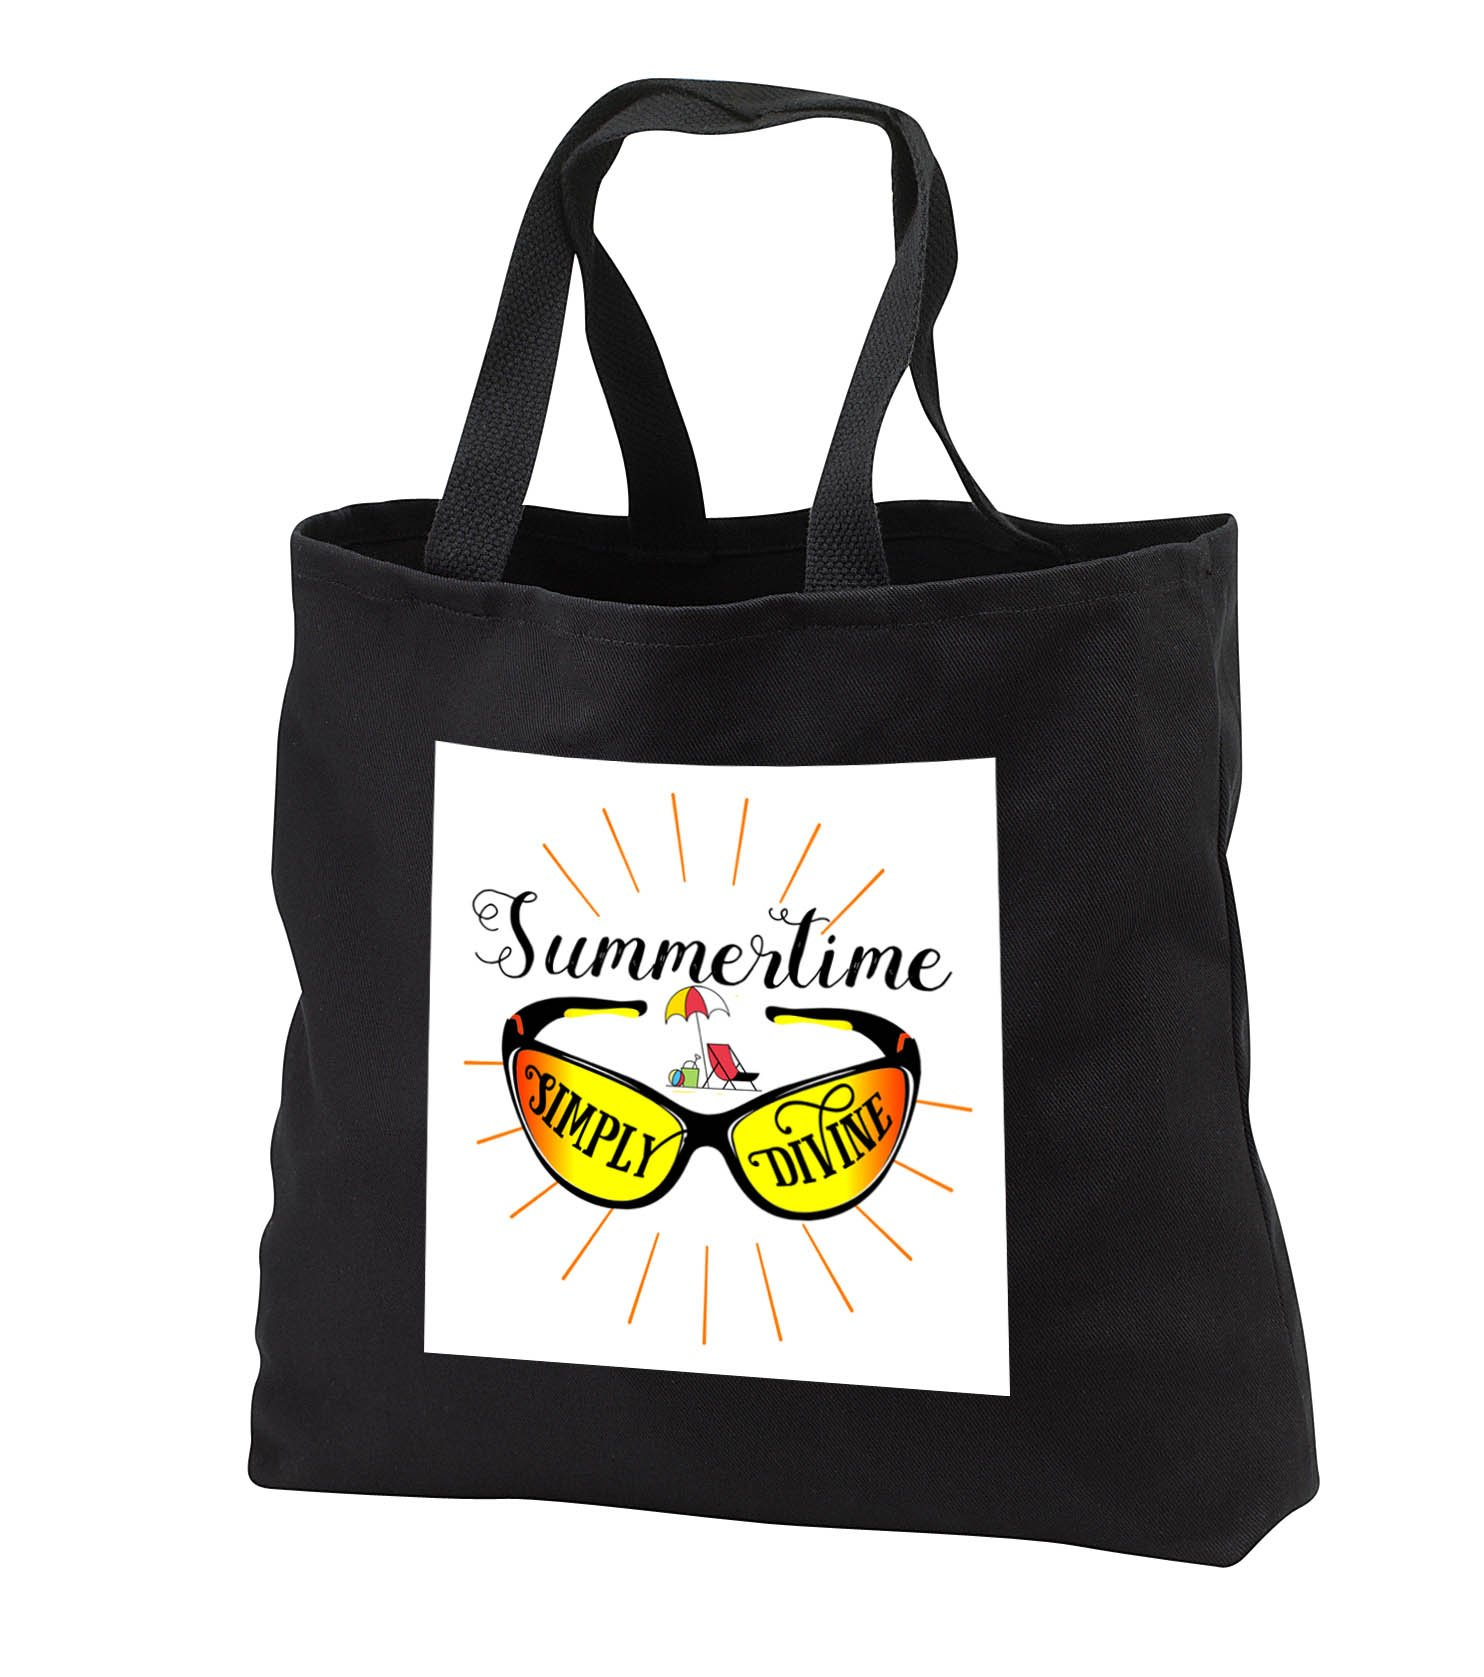 Doreen Erhardt Summer - Summertime Simply Divine Sunglasses Typography for Summer Fun - Tote Bags - Black Tote Bag JUMBO 20w x 15h x 5d (tb_286326_3)